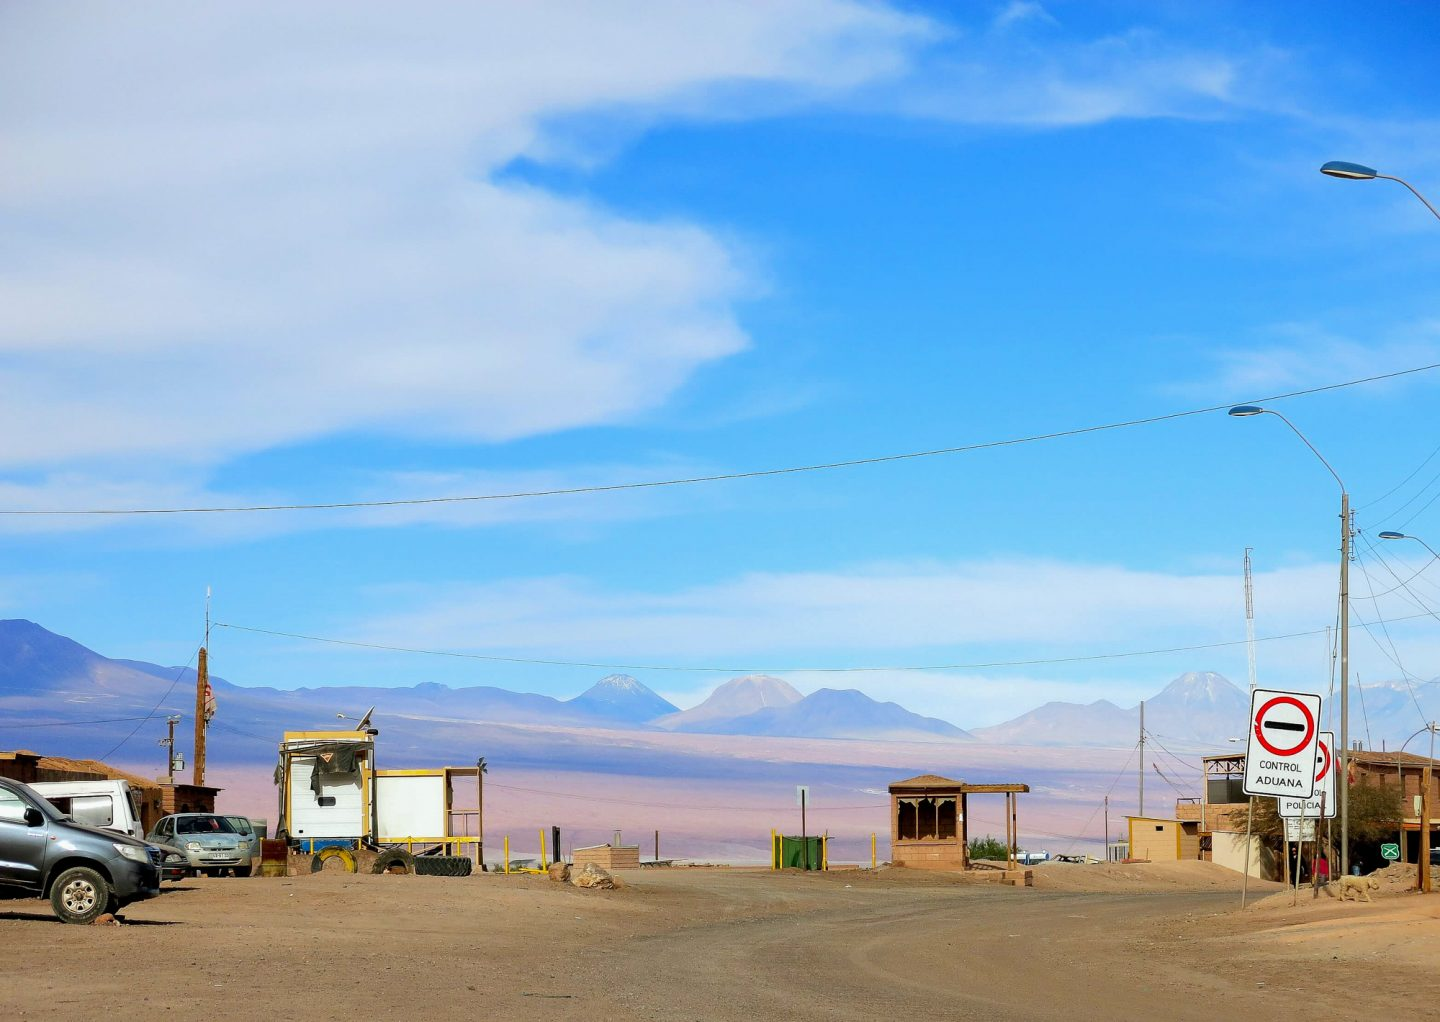 San Pedro de Atacama is the best base to explore The Atacama Desert in northern Chile. Even the views from town are amazing!